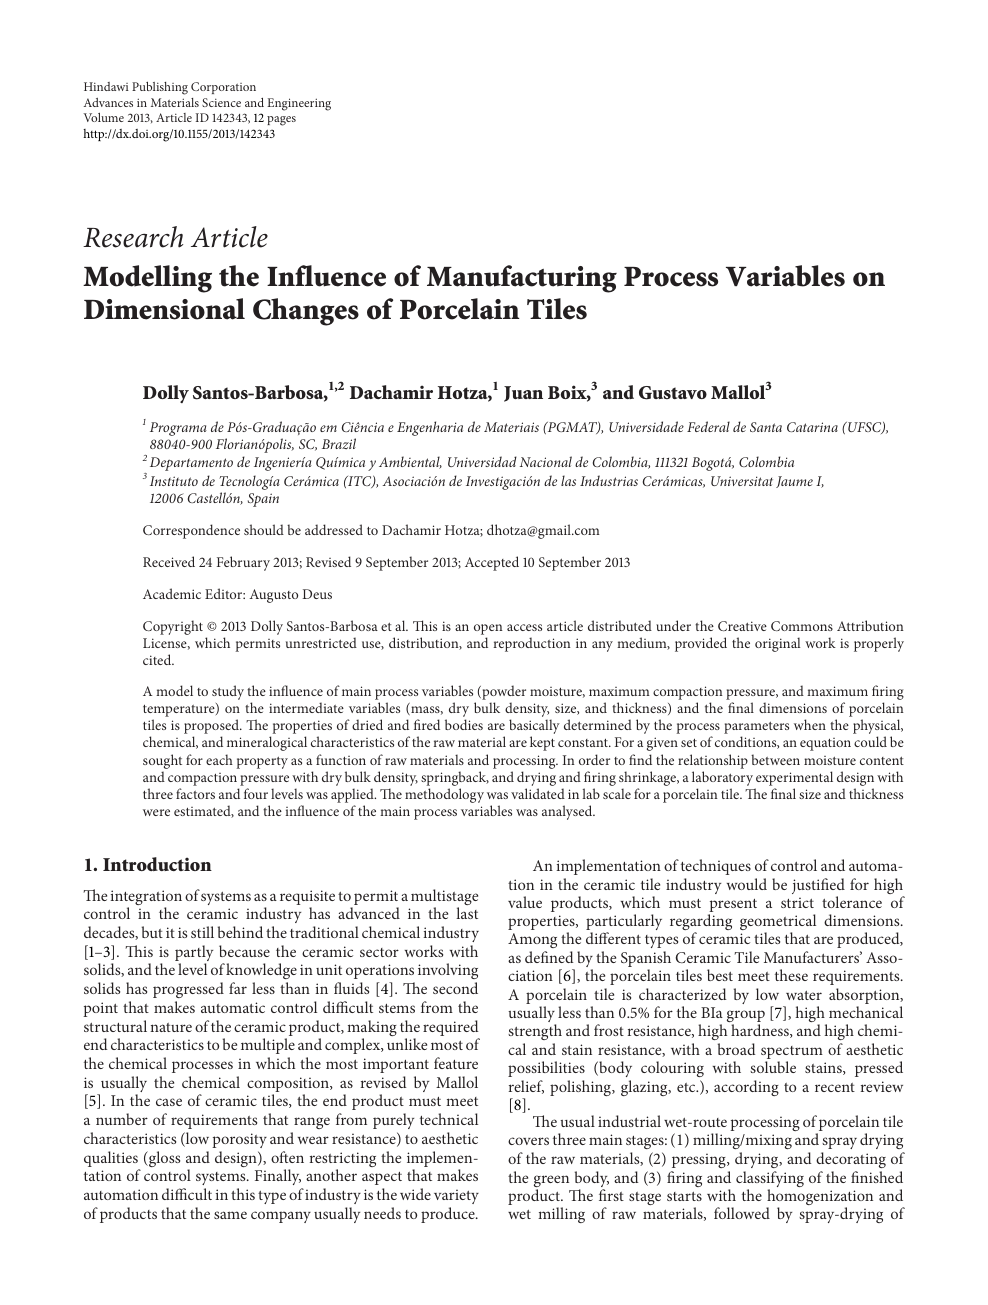 Modelling the Influence of Manufacturing Process Variables on